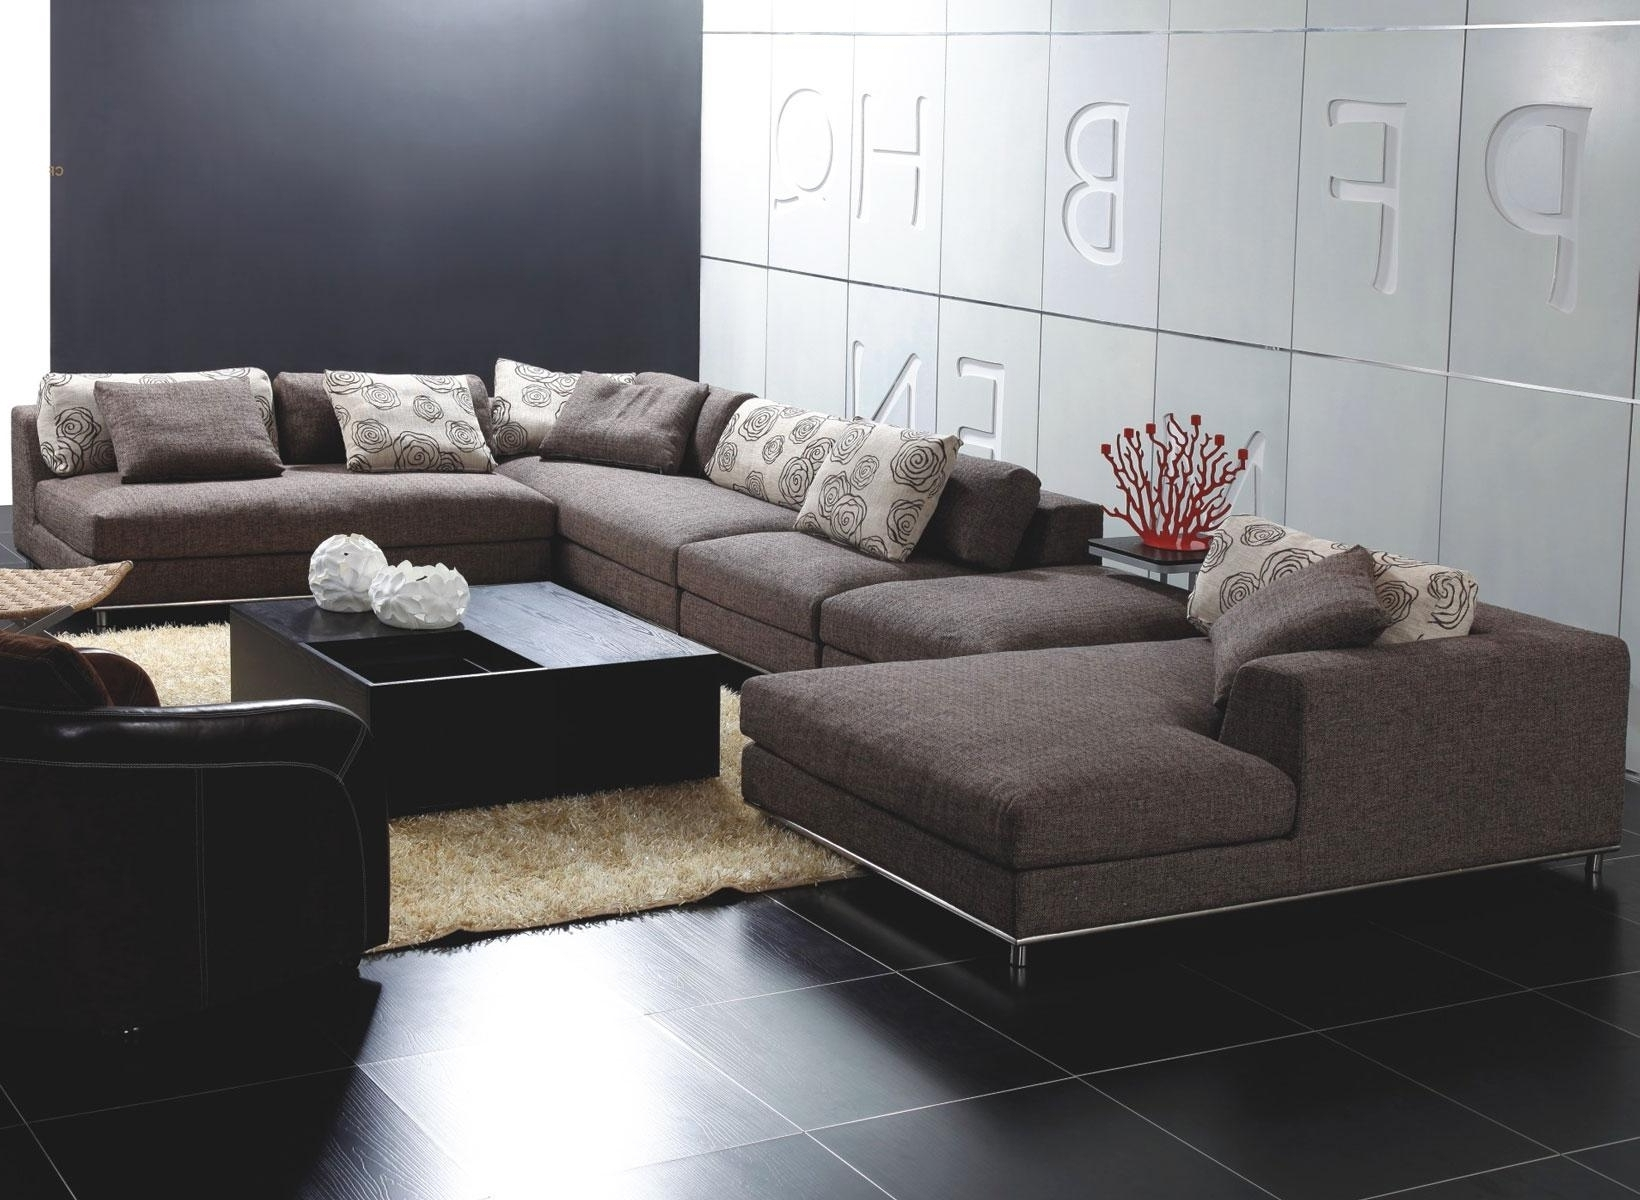 Widely Used Portland Oregon Sectional Sofas Regarding Photos Sectional Sofas Portland Oregon – Mediasupload (View 17 of 20)